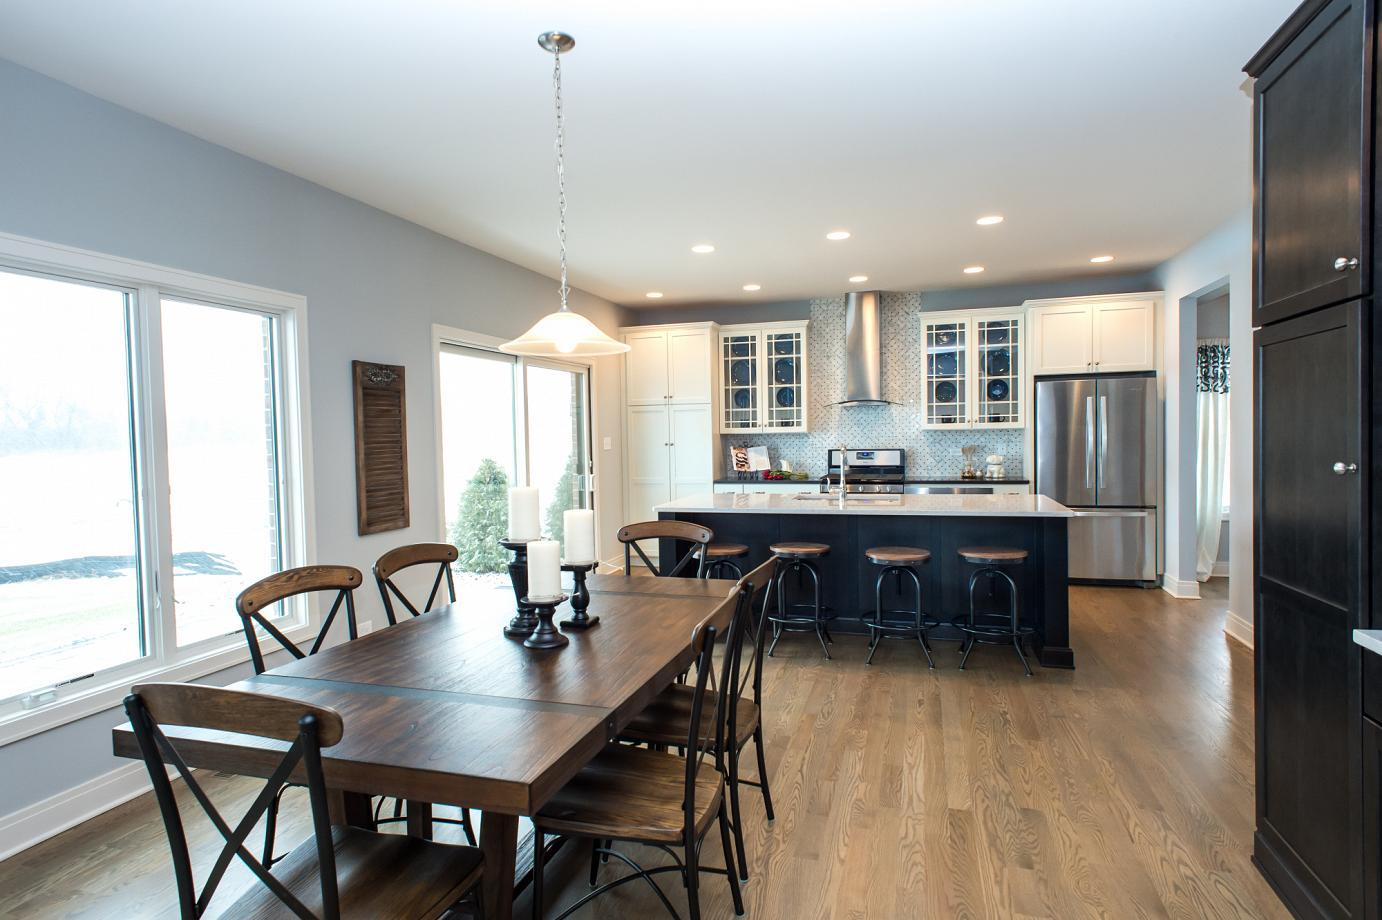 Kitchen featured in the Calysta By Gallagher and Henry in Chicago, IL